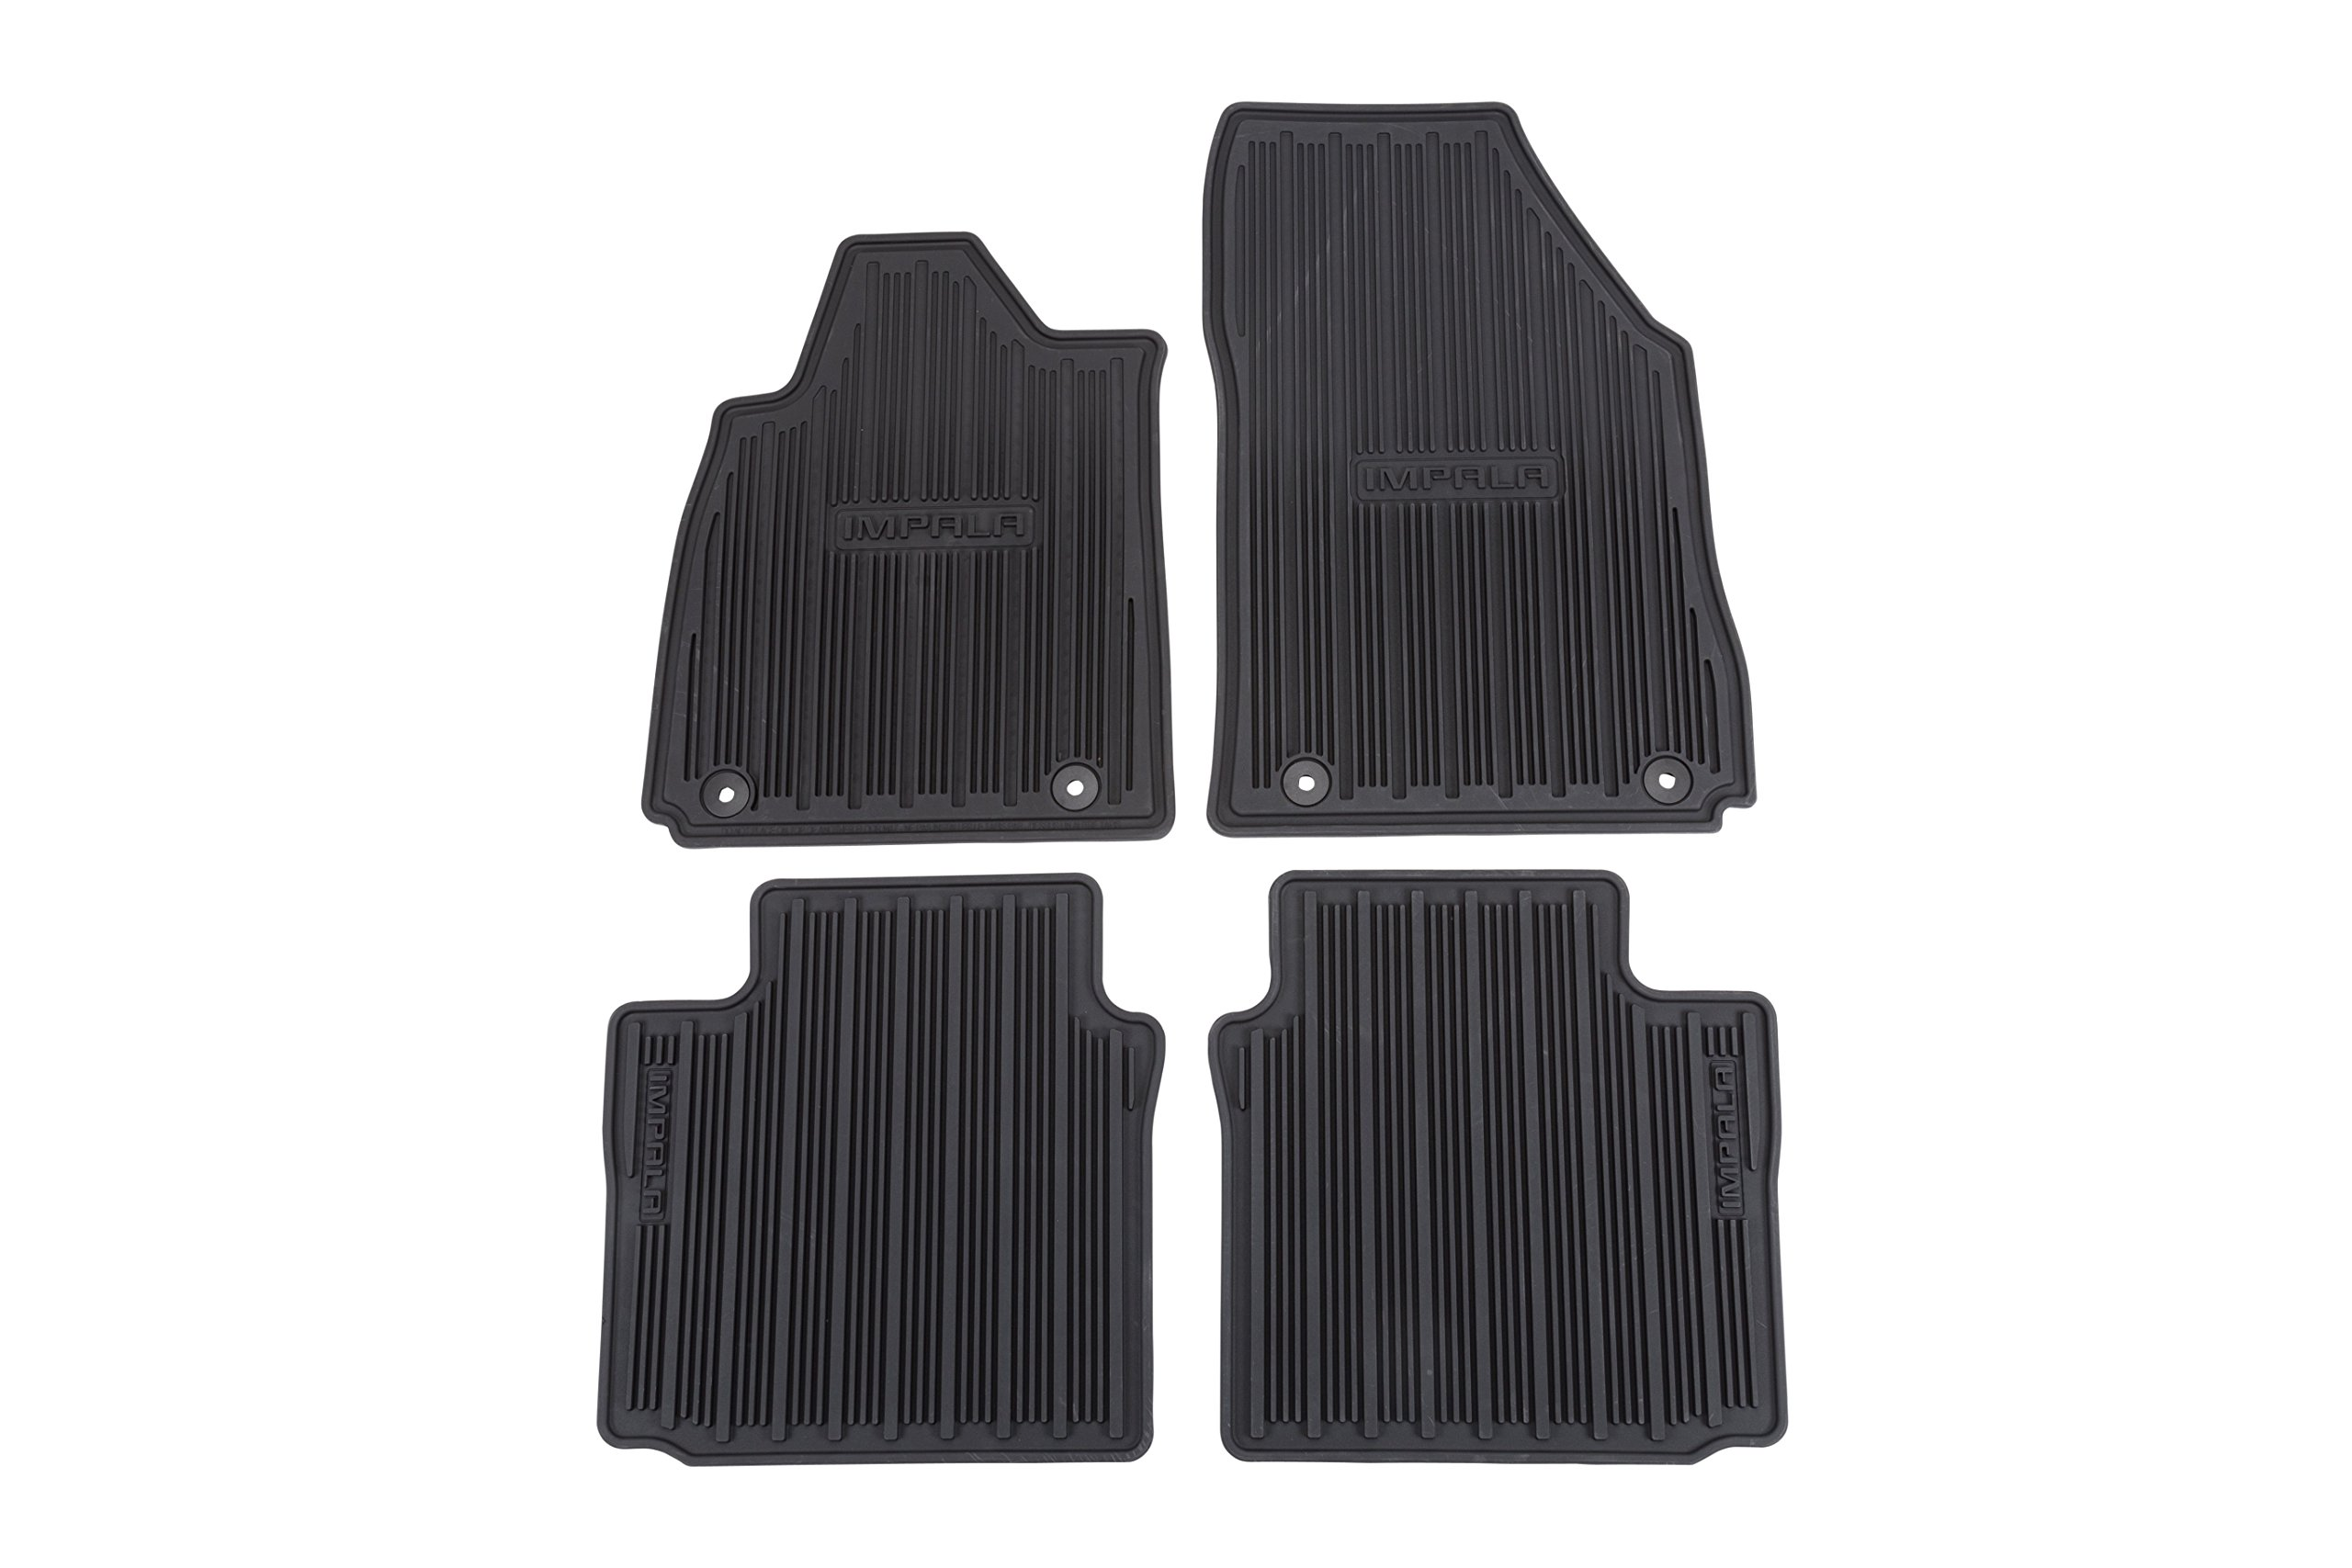 GM Accessories 22759780 Front and Rear All-Weather Floor Mats in Jet Black with Impala Logo